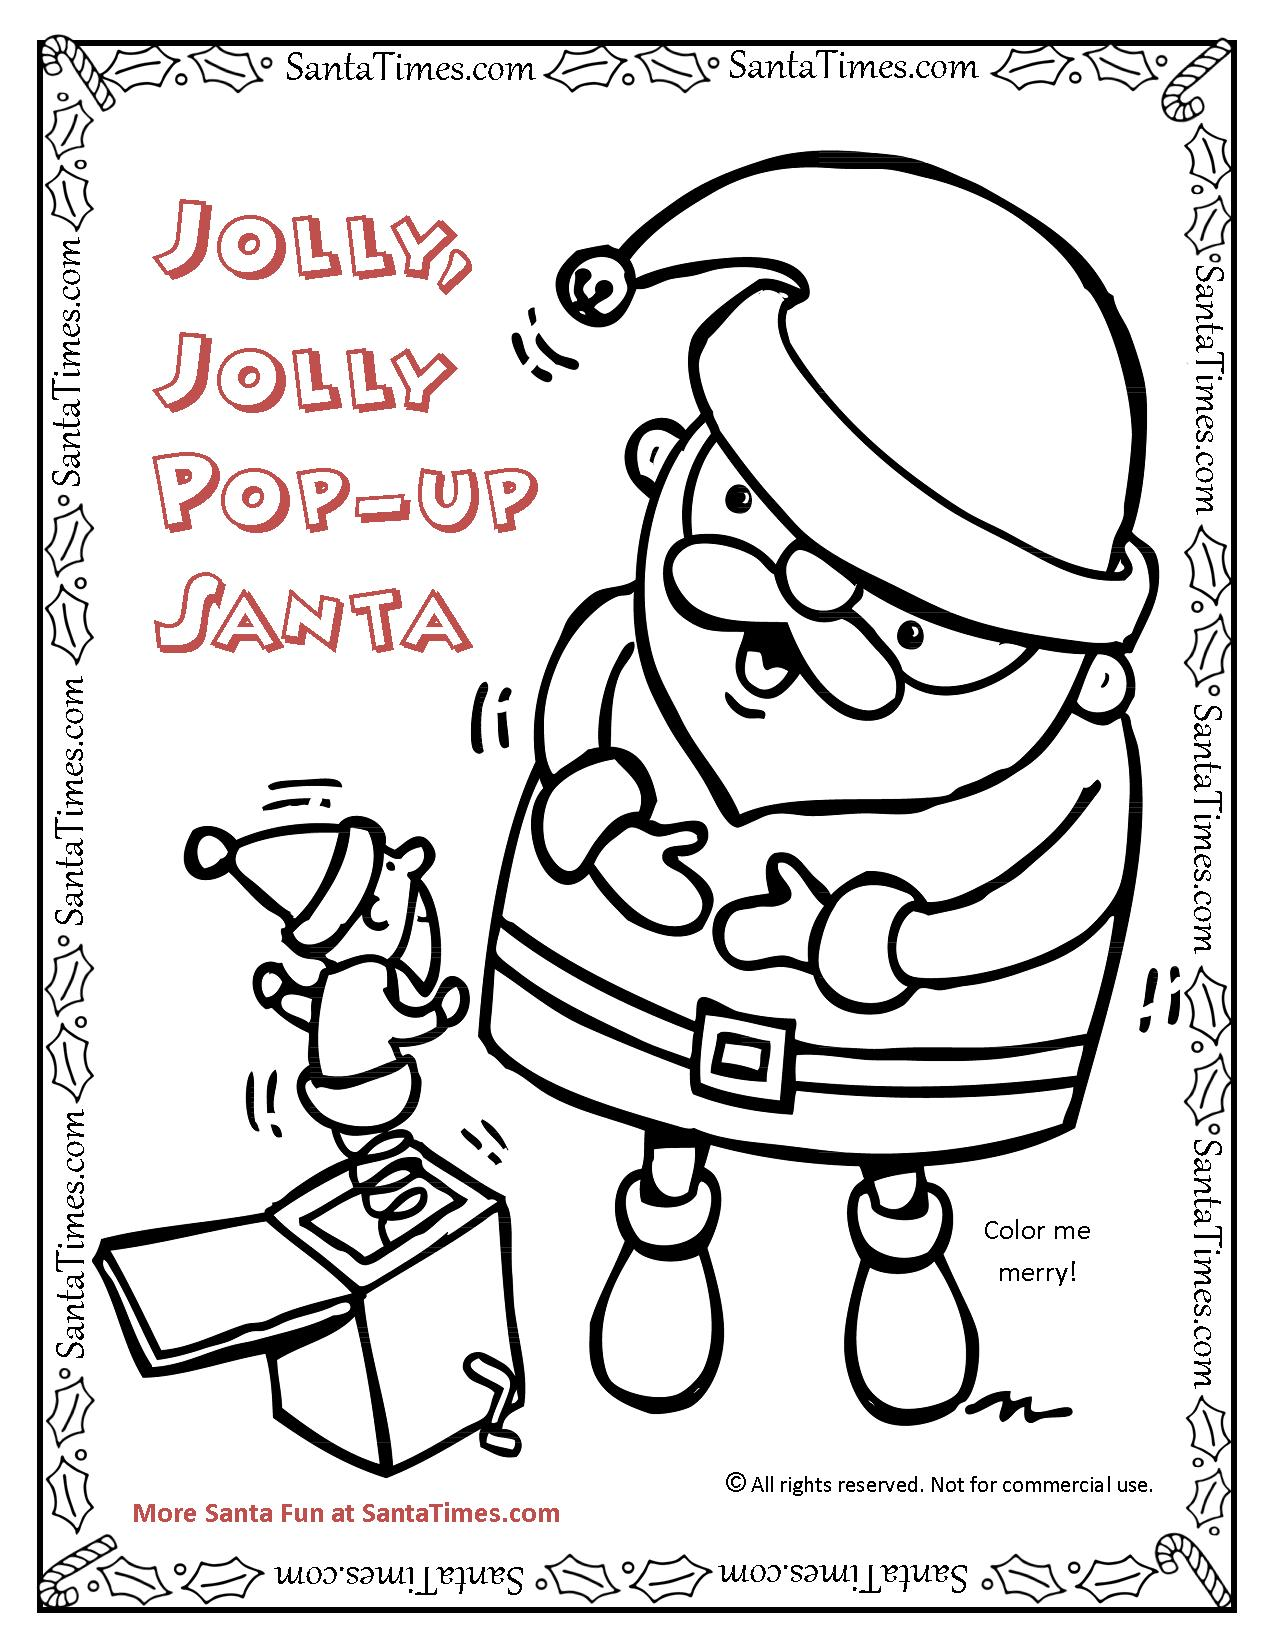 jolly jolly pop up santa